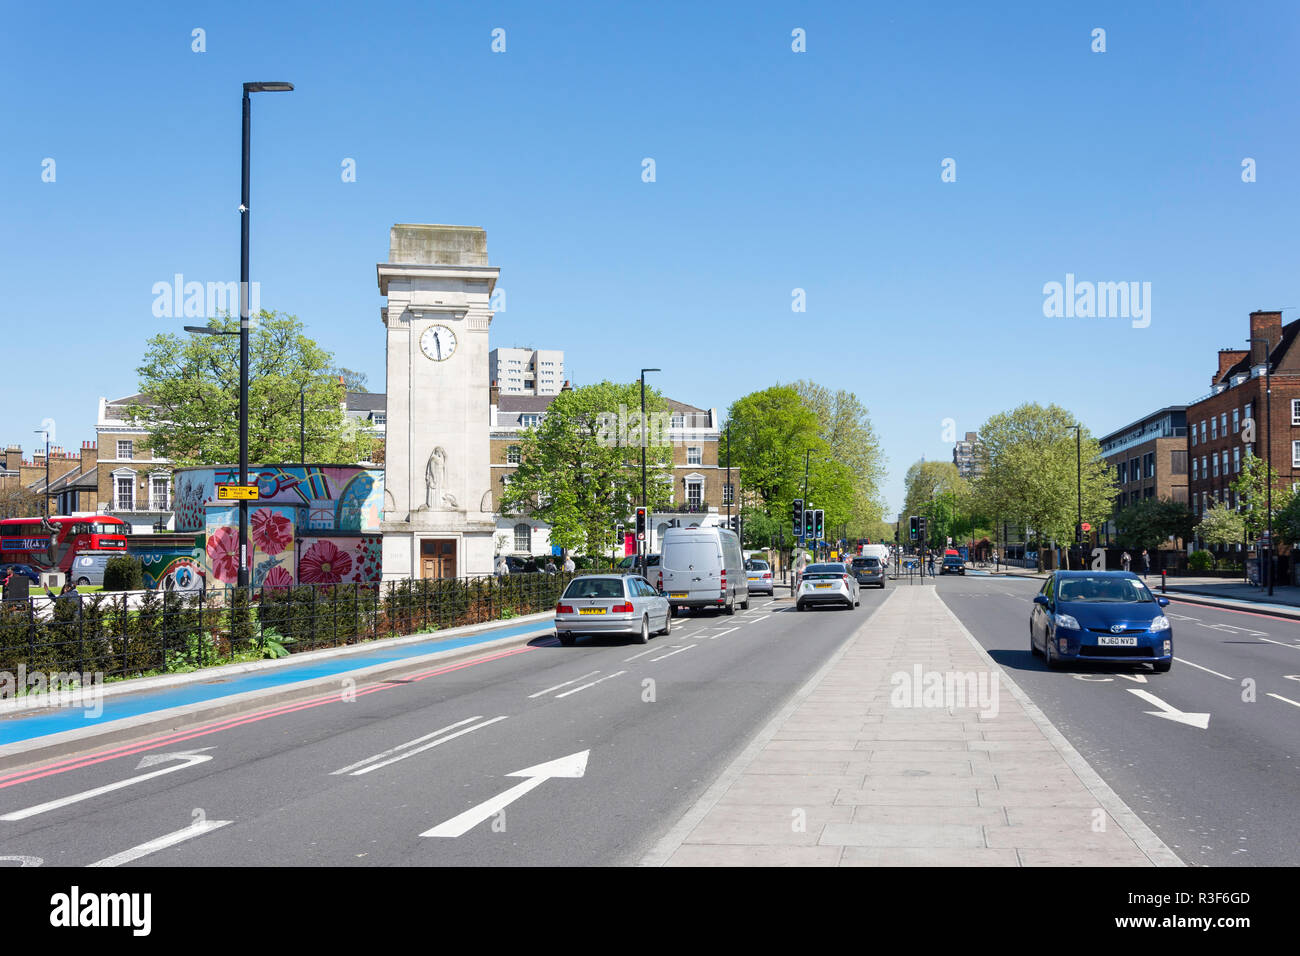 Stockwell War Memorial Clocktower, Clapham Road, Stockwell, London Borough of Lambeth, Greater London, England, United Kingdom - Stock Image